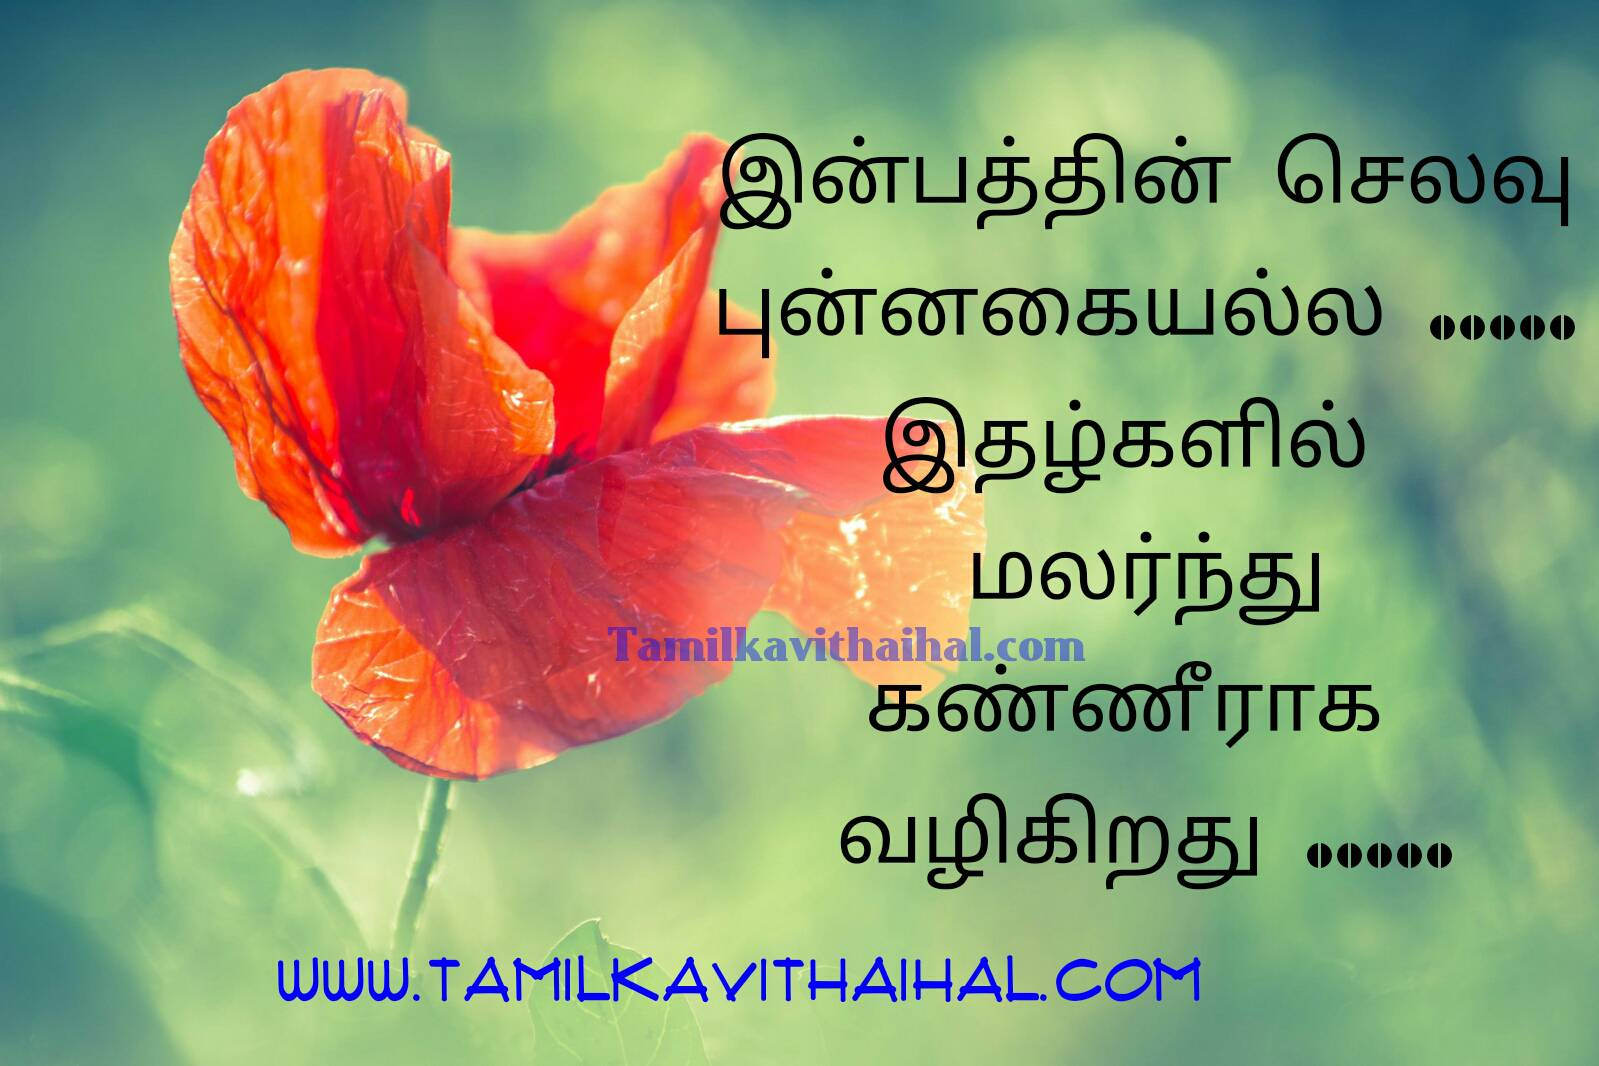 Famous tamil quotes about happy confidence valuable thathuvam in tamilfont facebook pic fullhd image